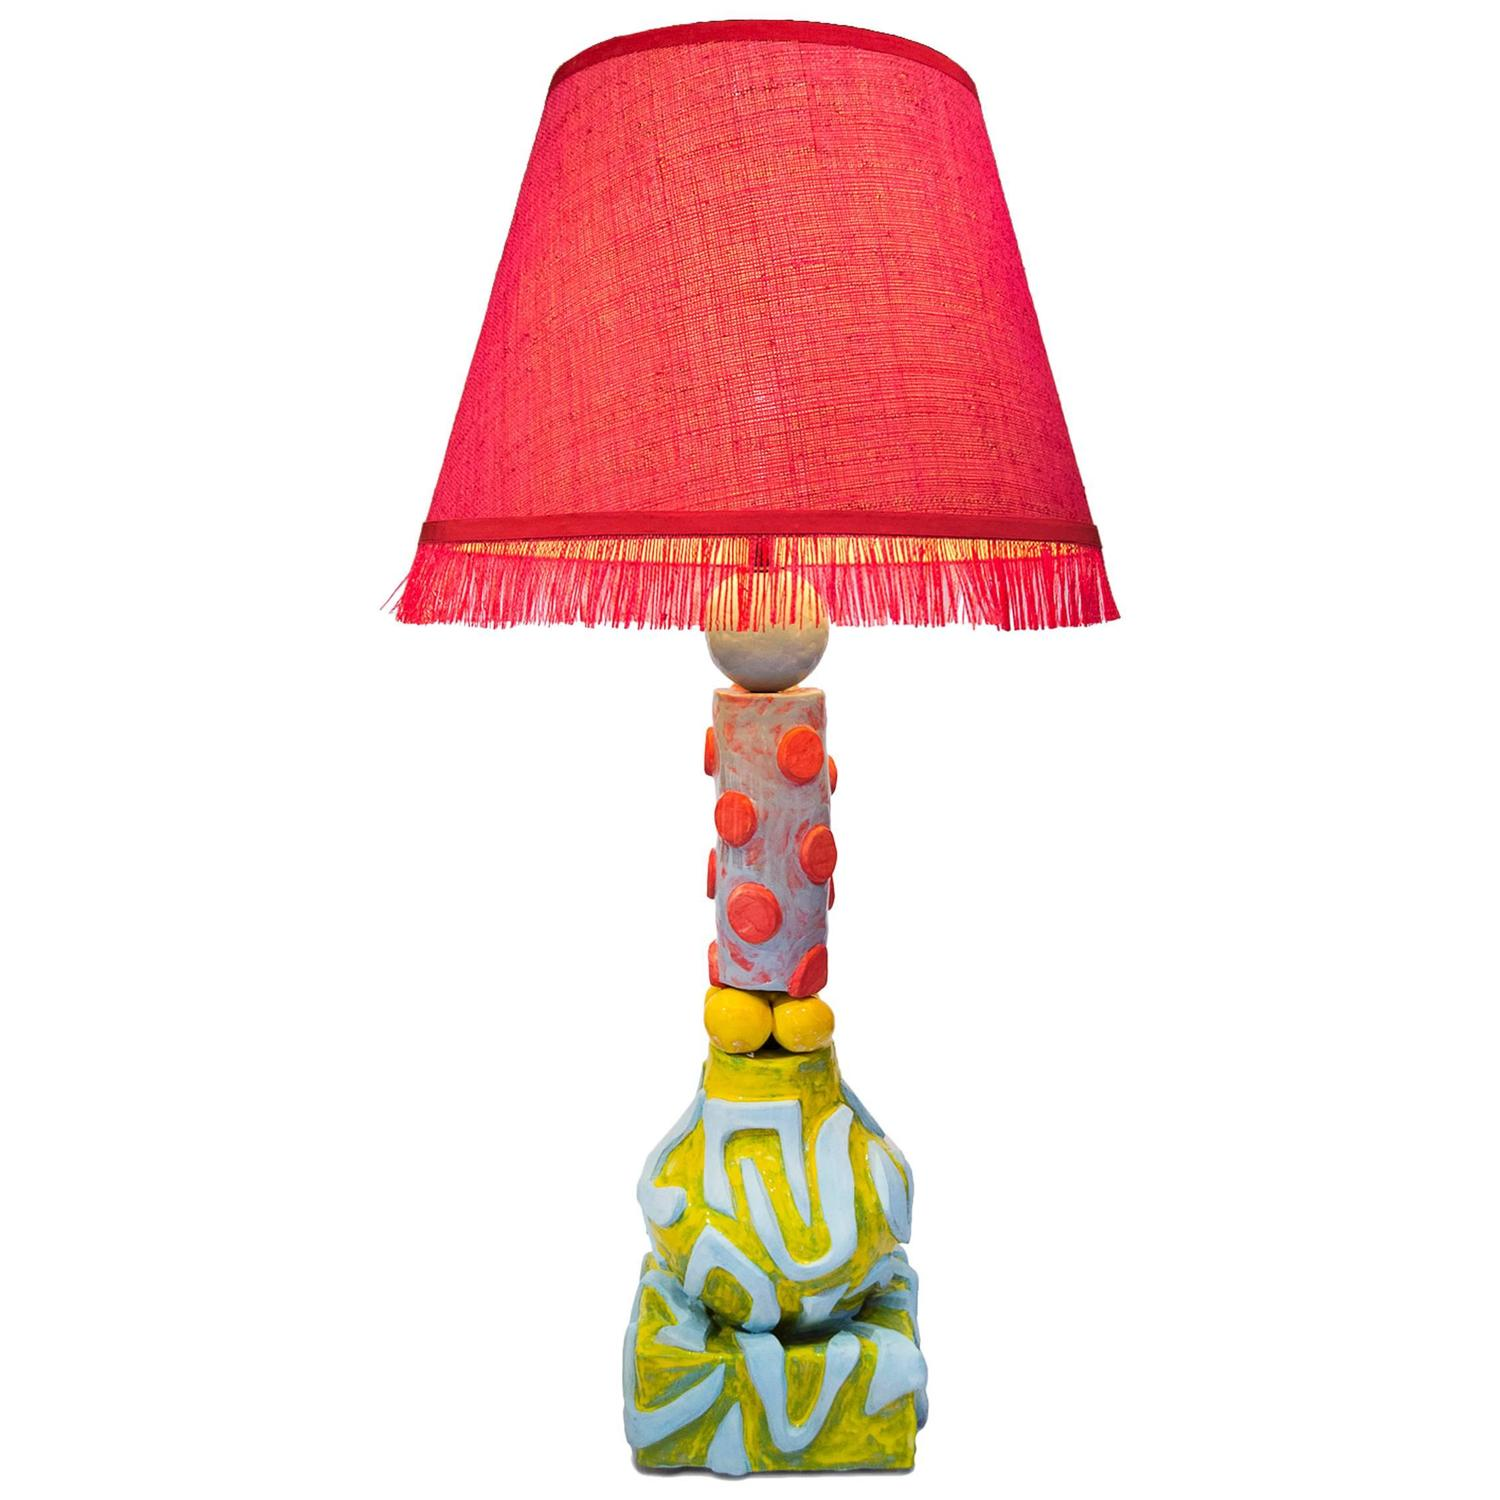 glass lamps most lamp for shades small large light blue table magic desk ideas extra green